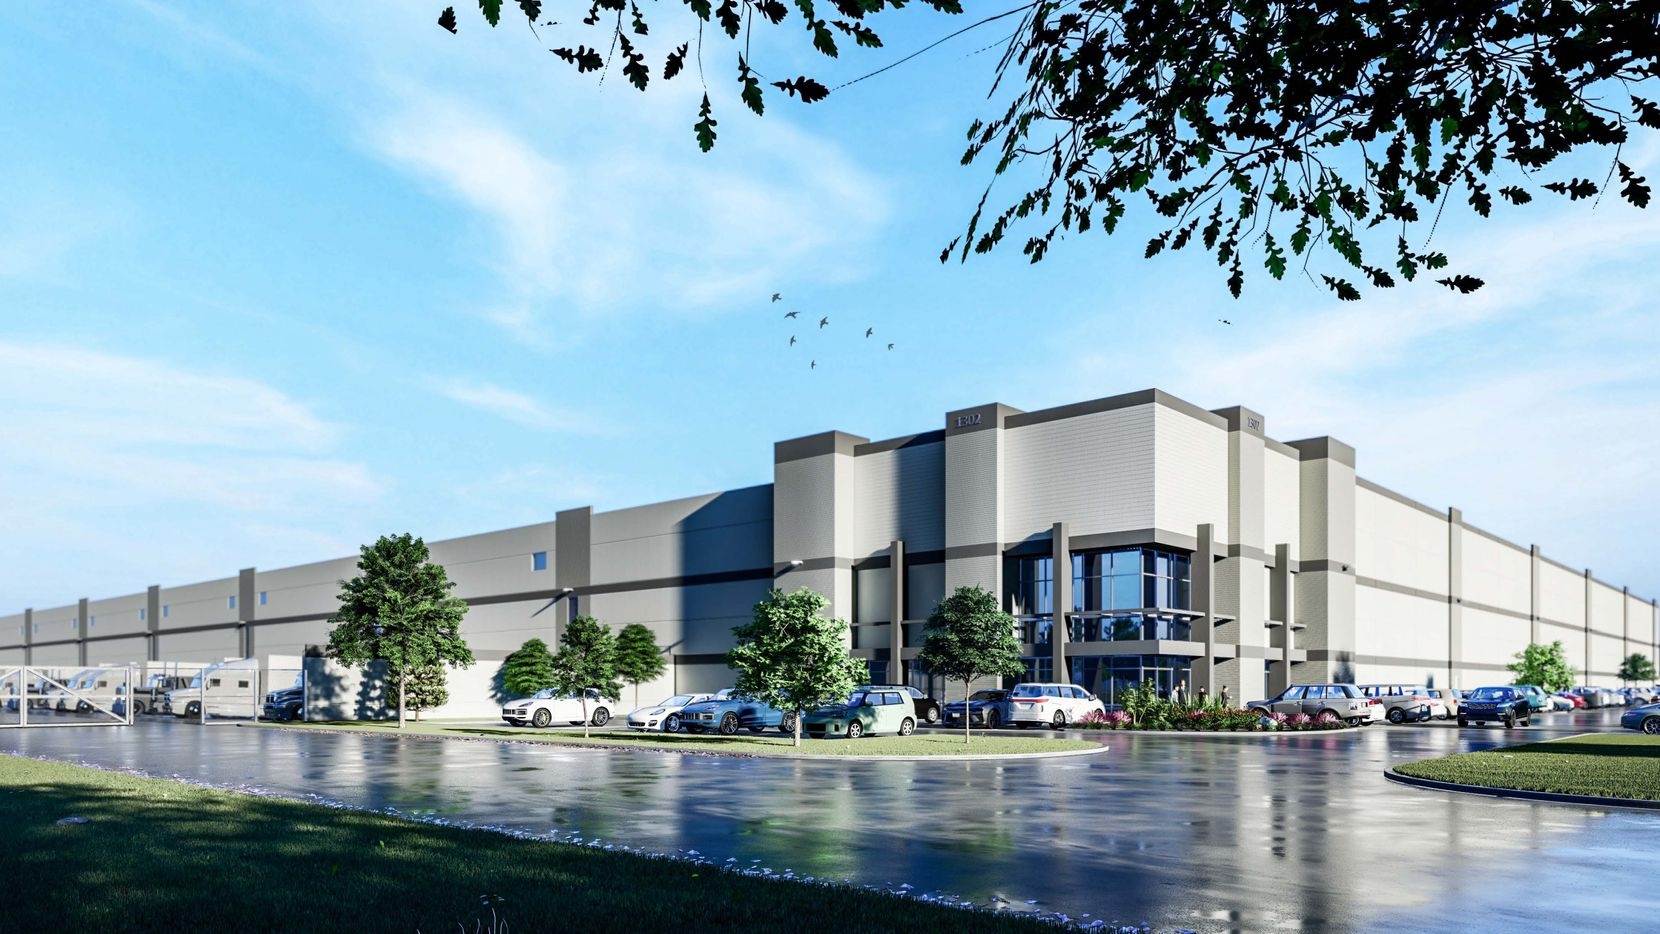 The more than 800,000-square-foot warehouse is planned near Interstates 20 and 45.